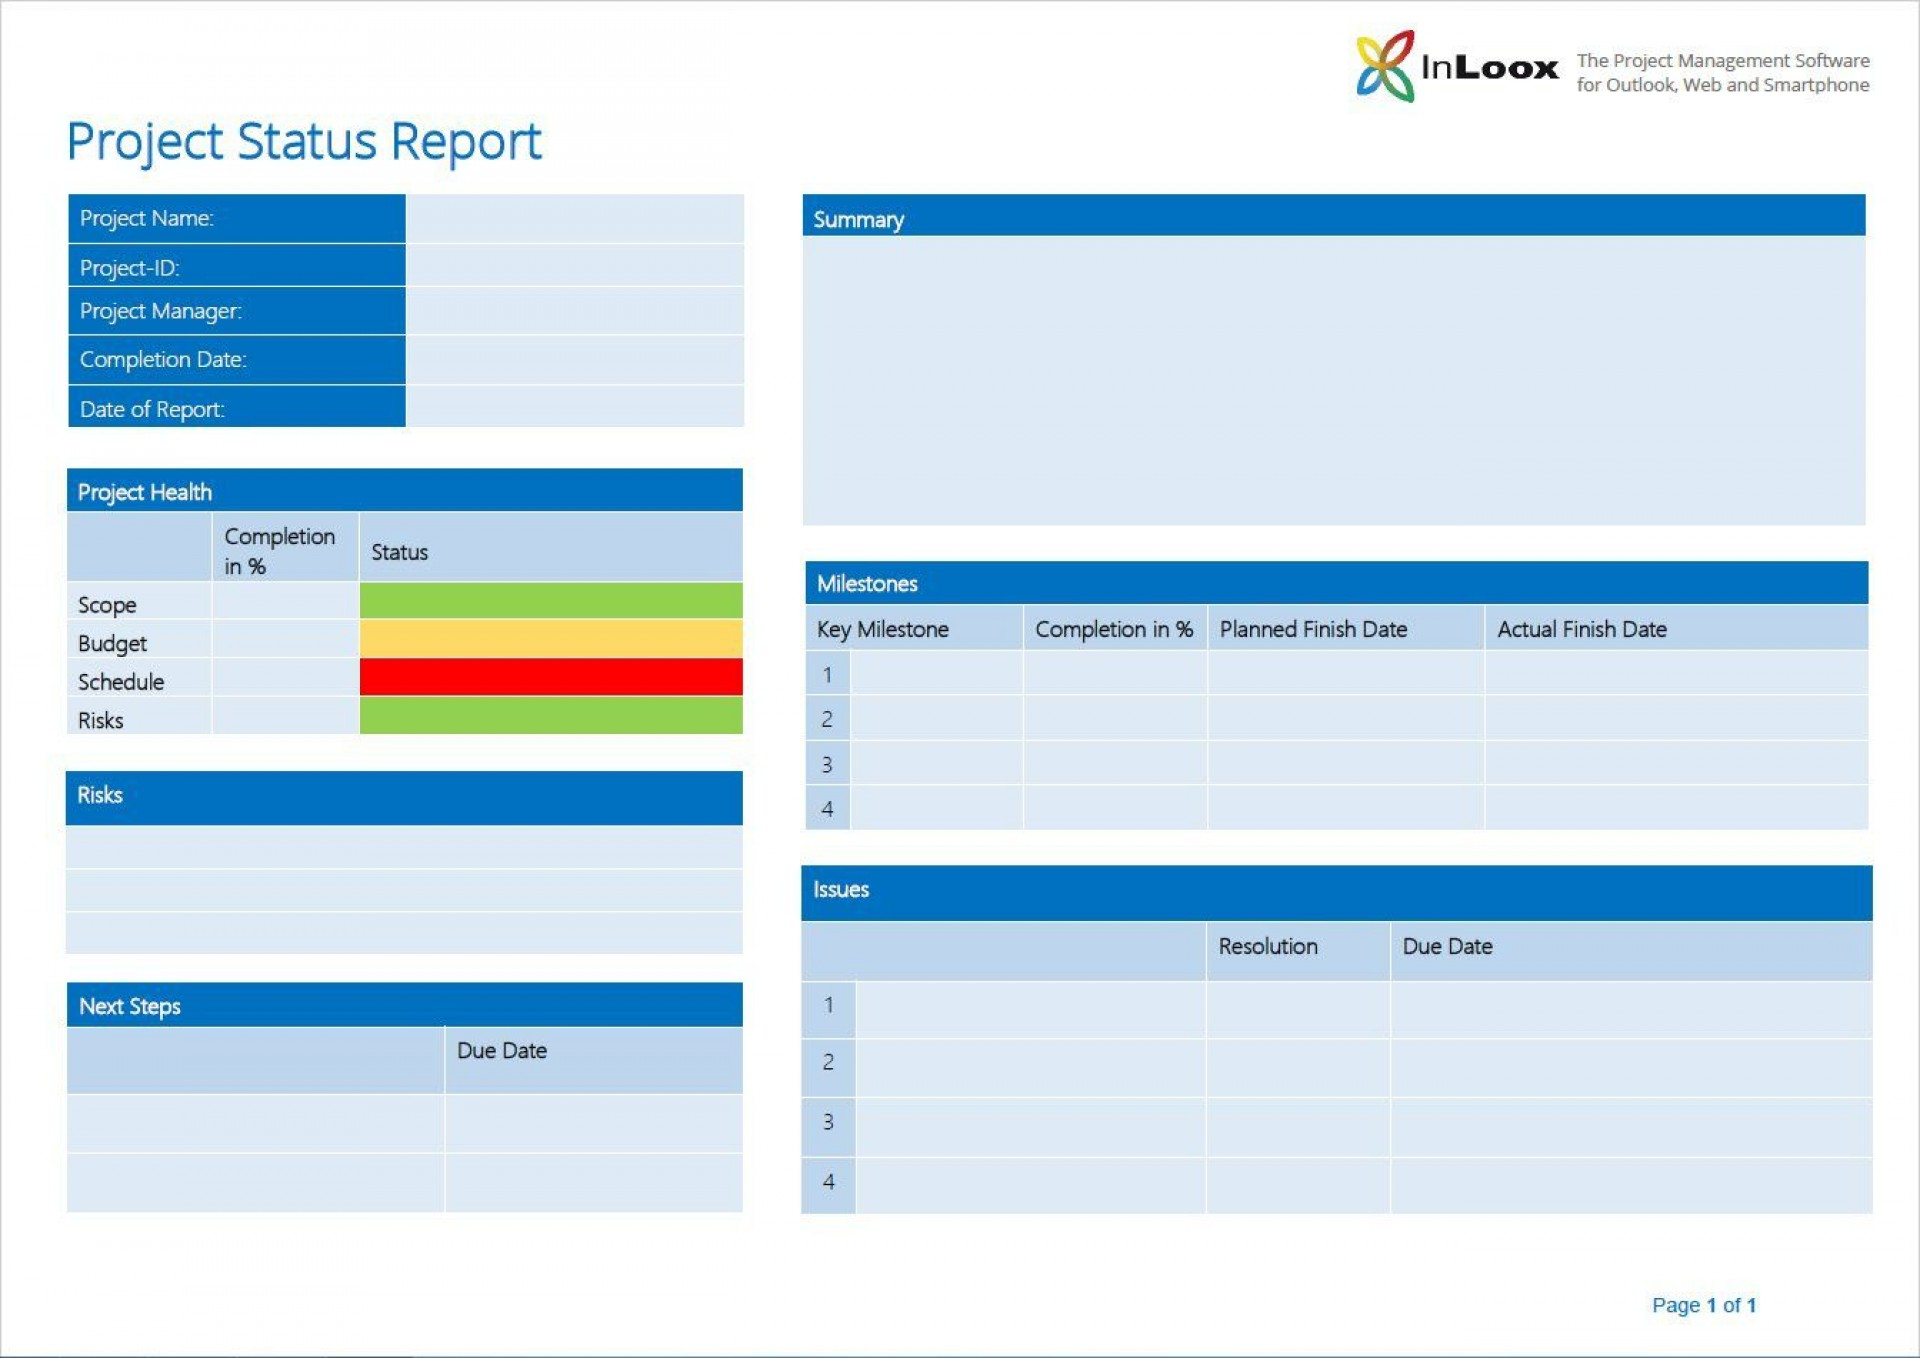 005 Top Project Management Progres Report Template Highest Clarity  Statu Ppt Weekly1920